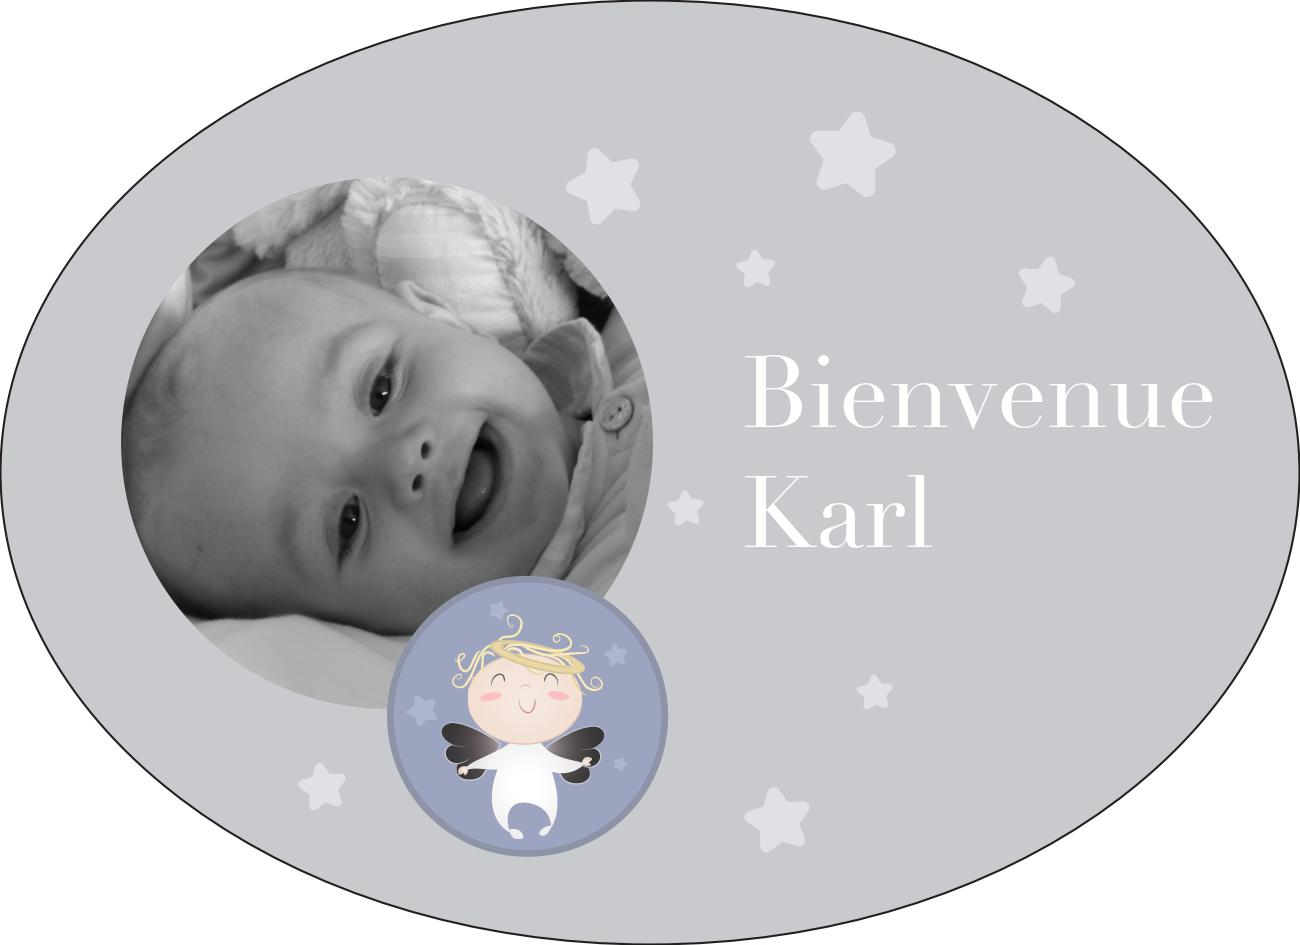 birth-karl-has_image